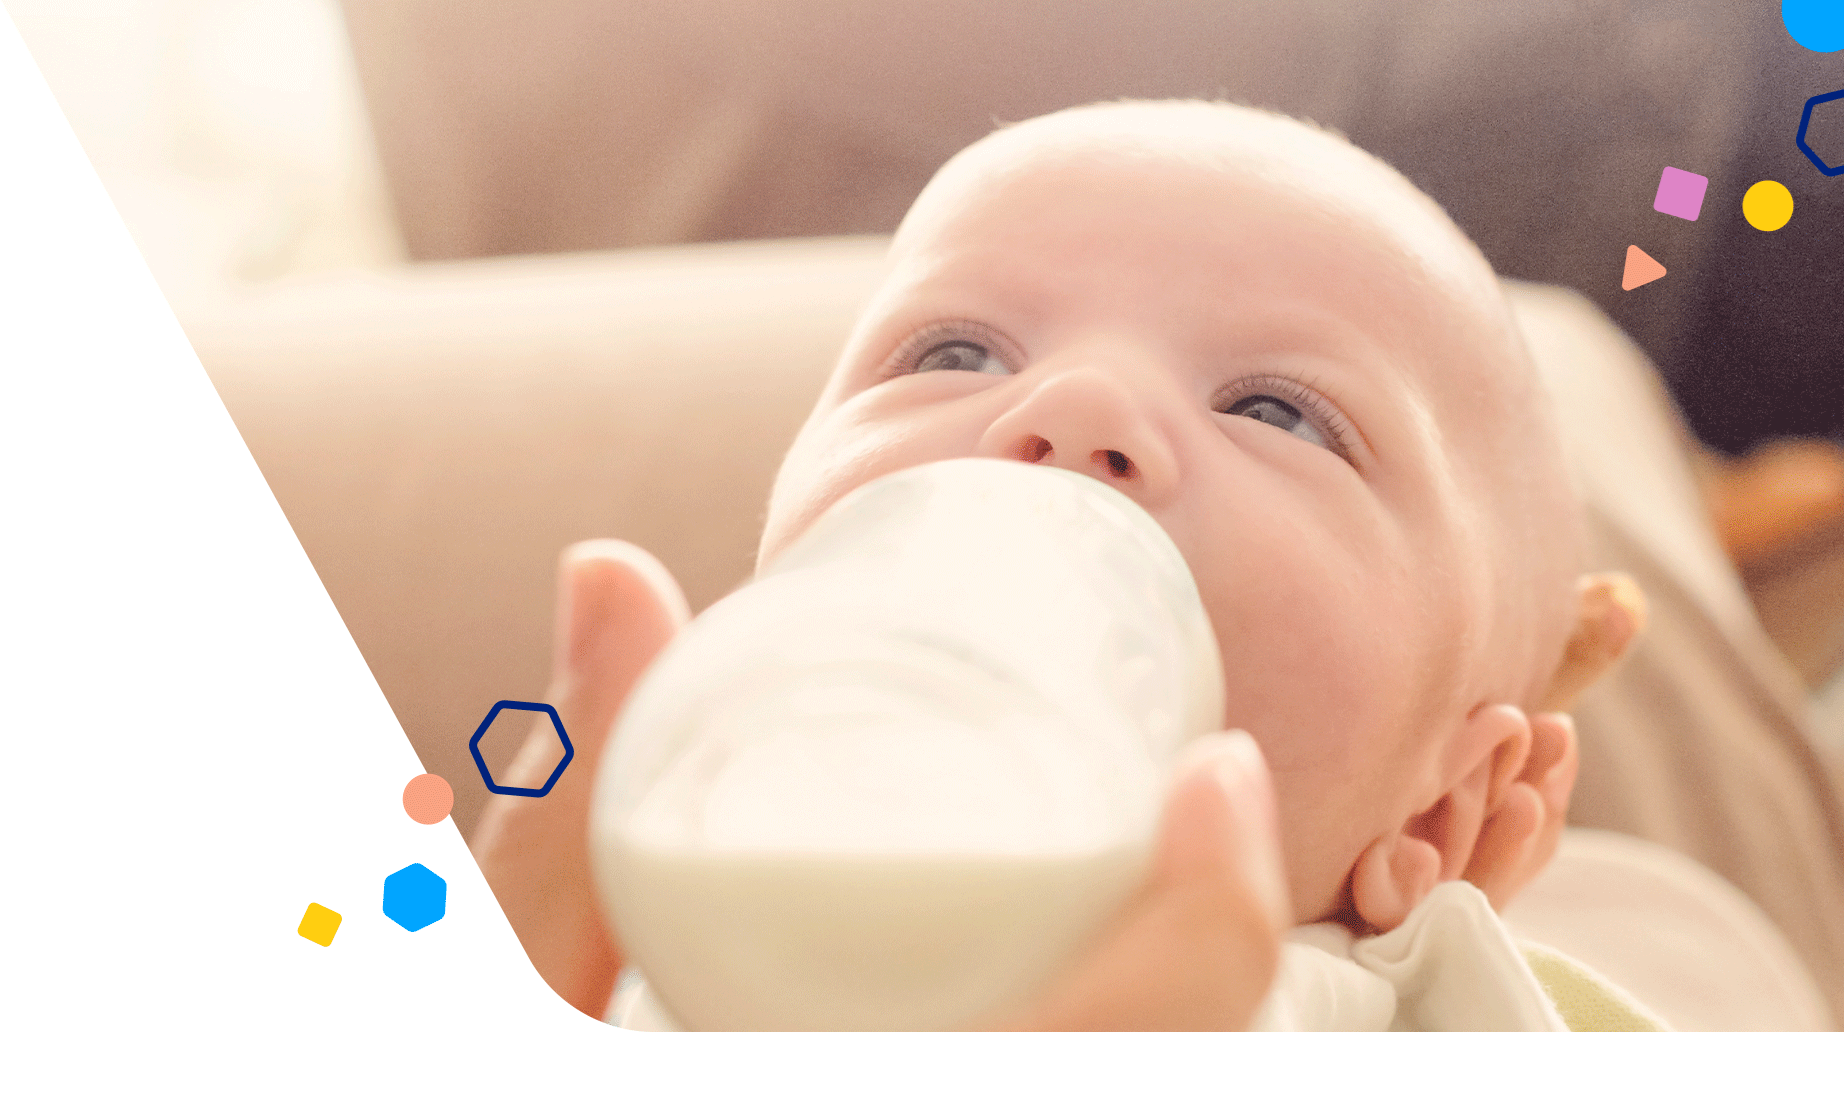 prebiotics-probiotics-and-your-baby-what-research-shows